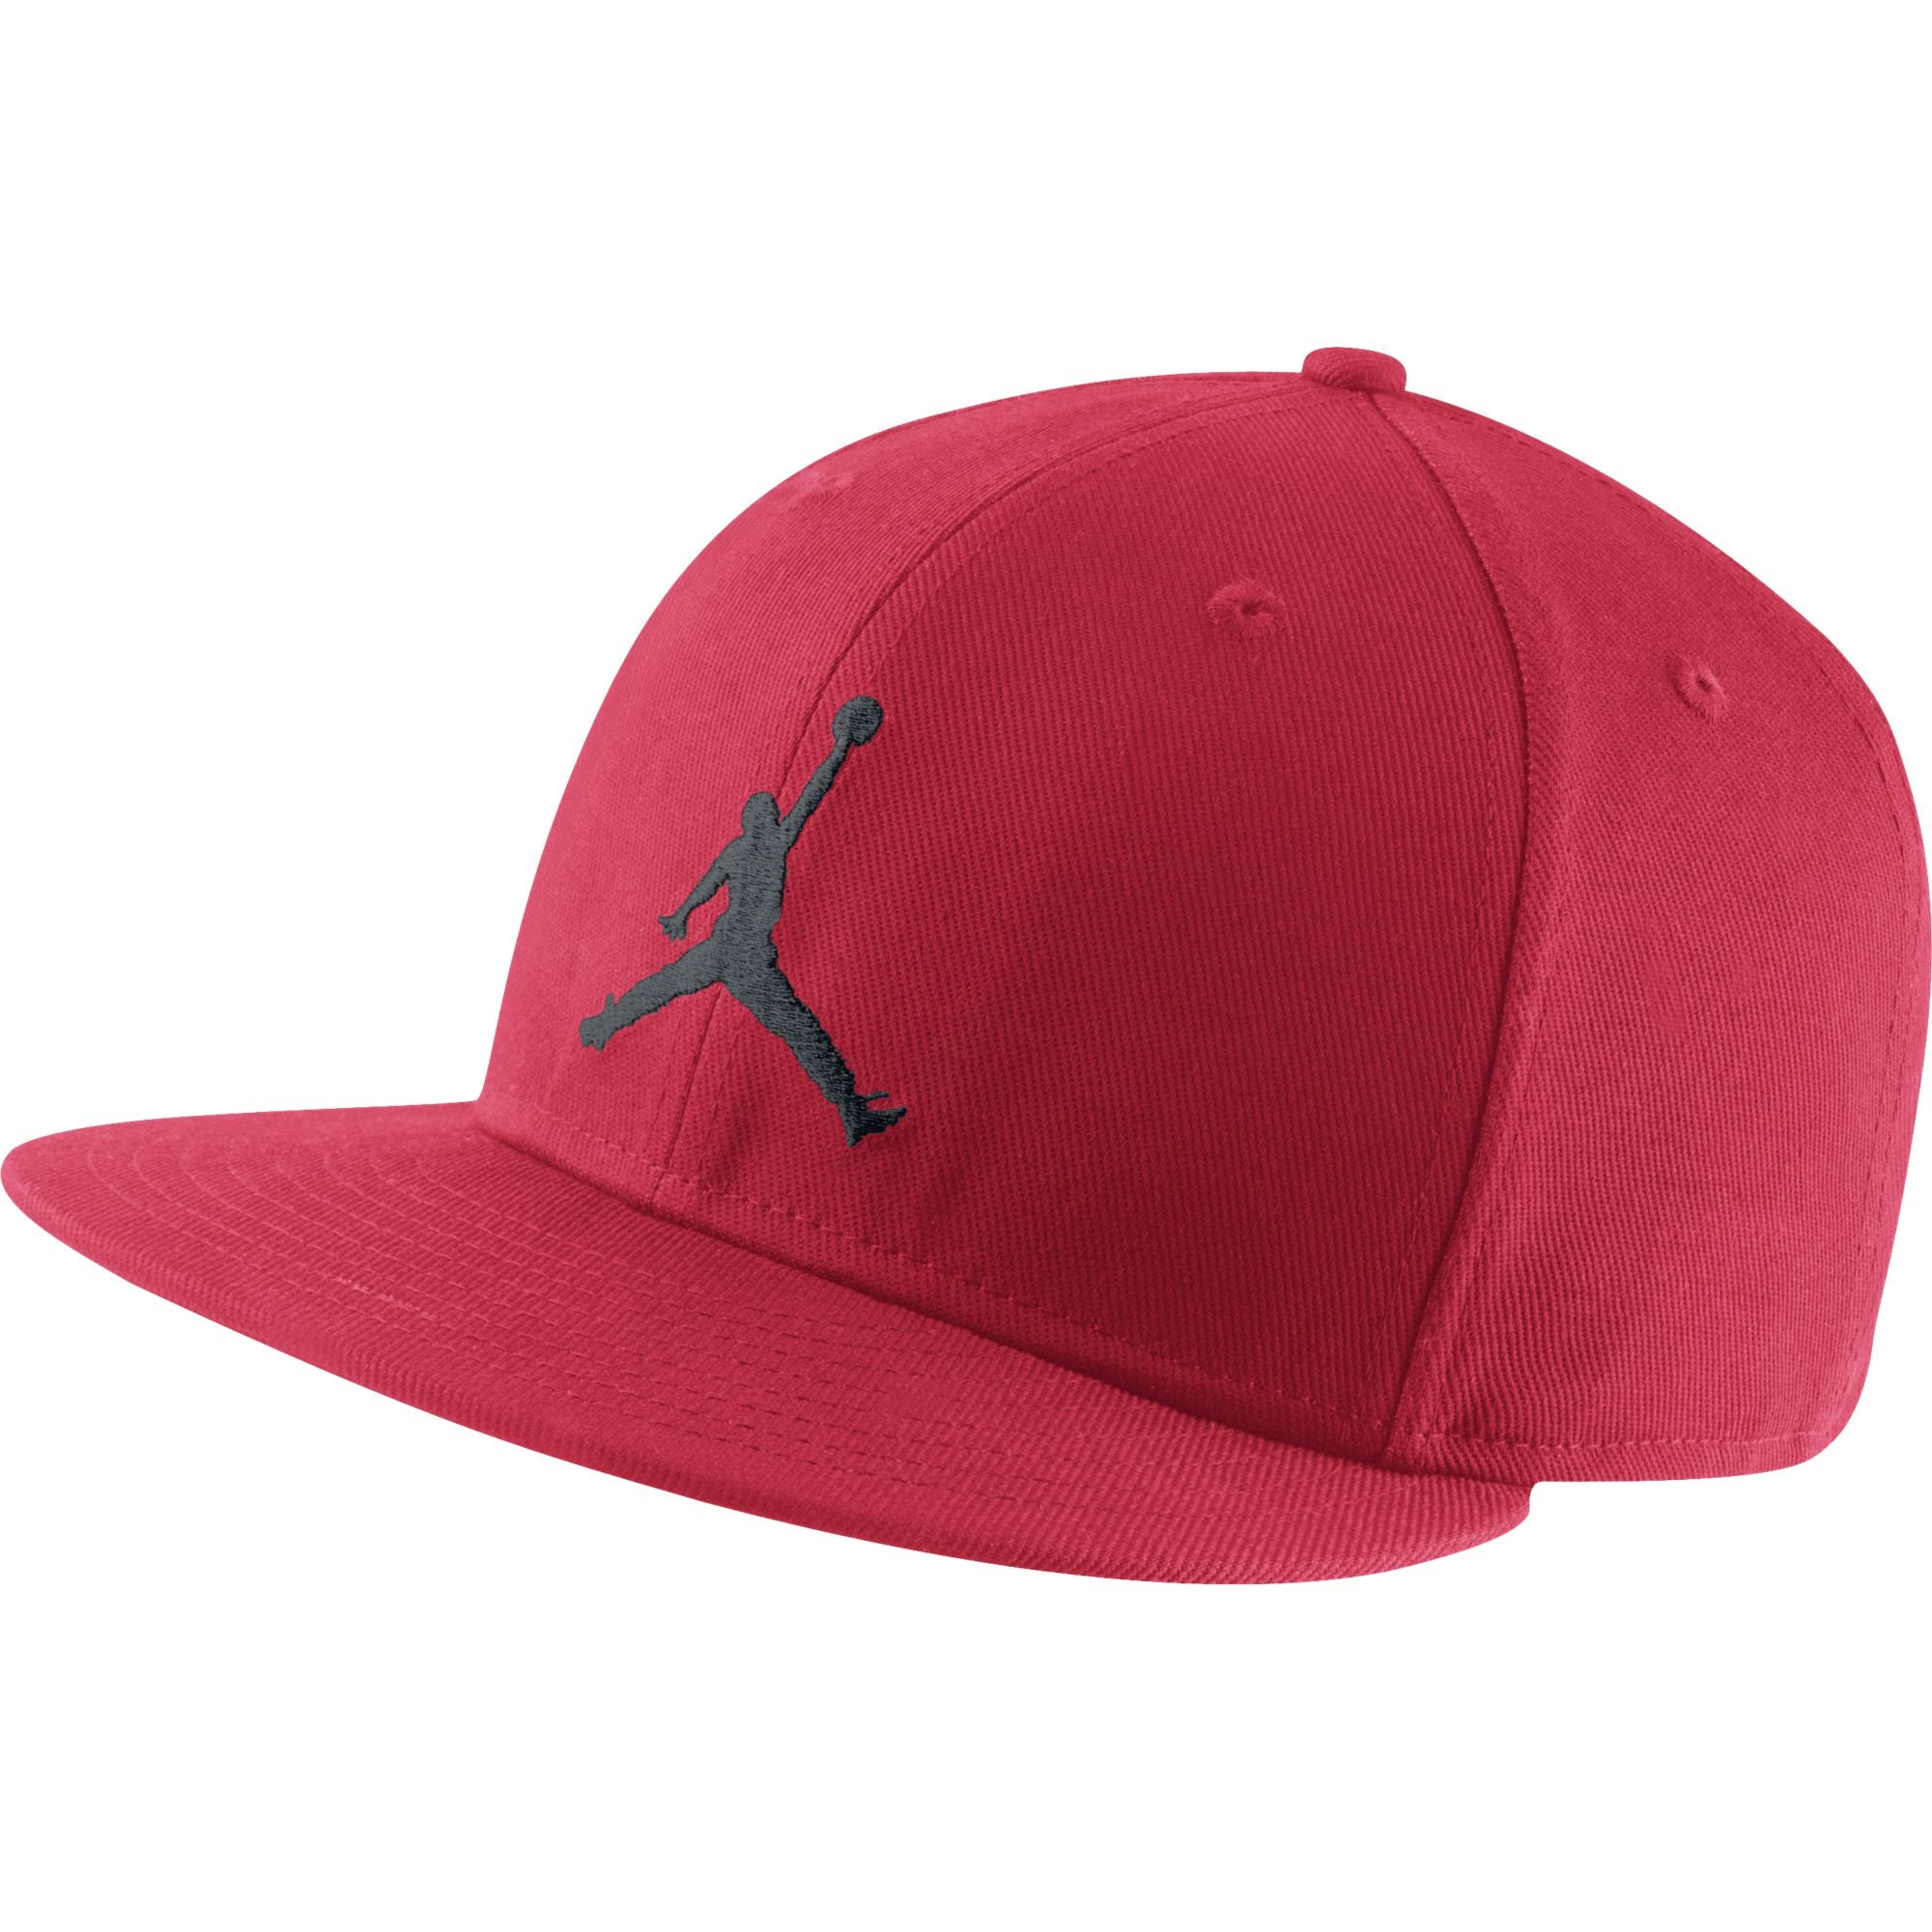 Nike Jordan True Jumpman Fitted Cap - NK-507942-695